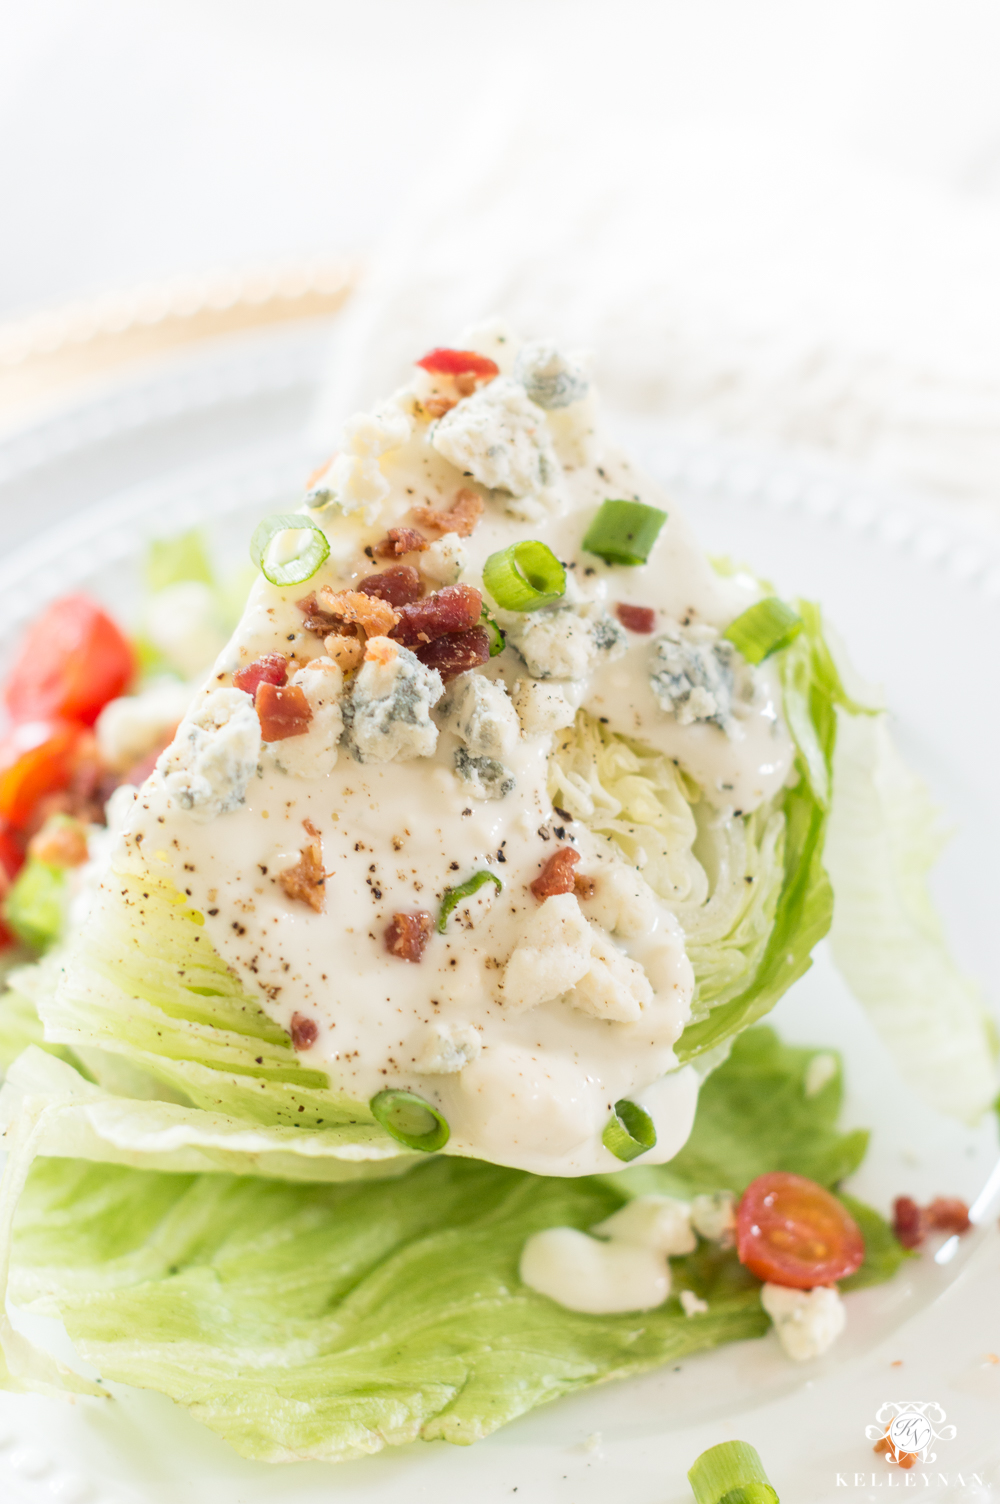 Simple wedge salad that's perfect for a Galentine's luncheon